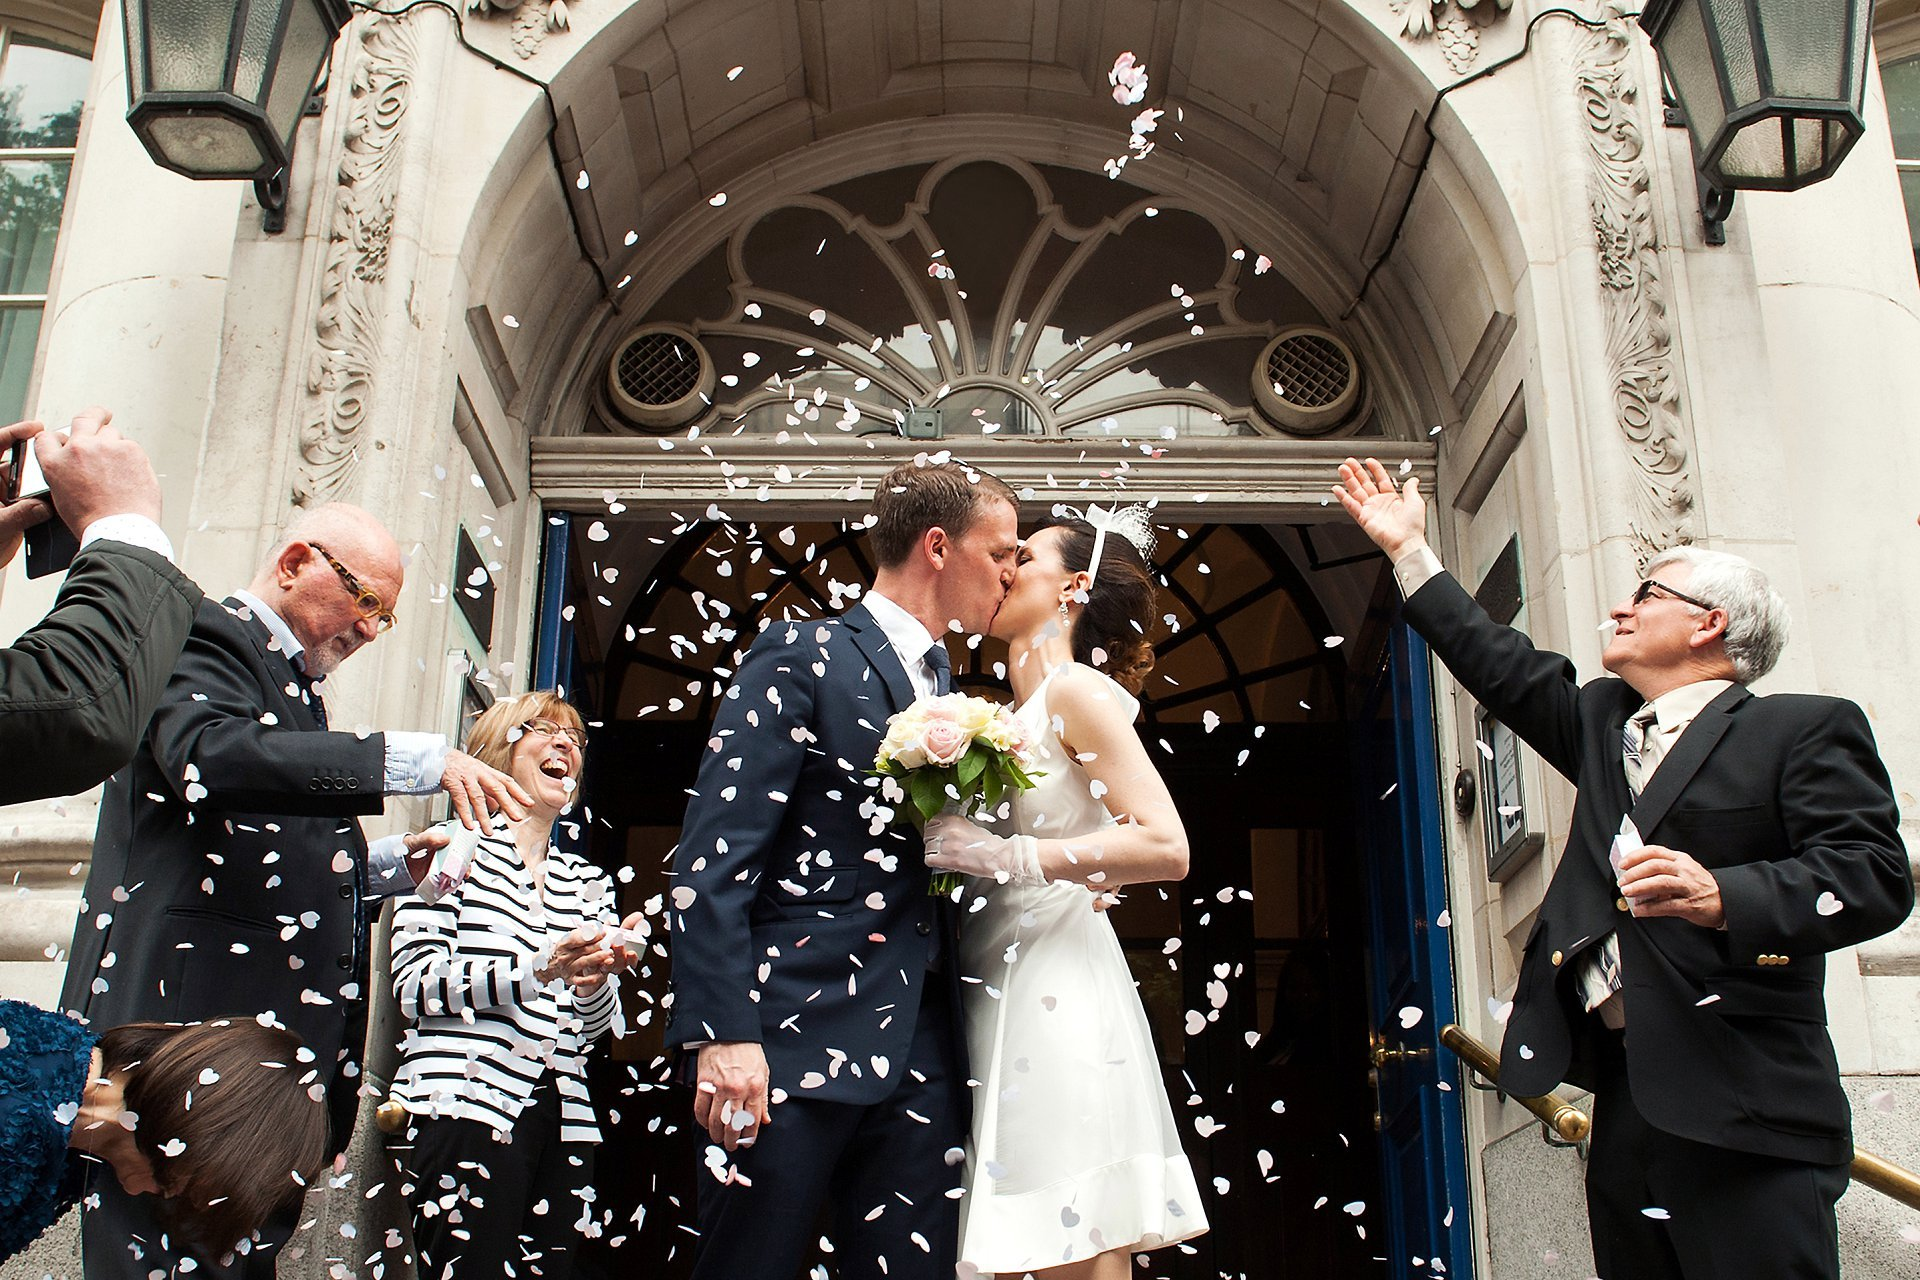 Rossetti Room wedding photographer Emma Duggan for small ceremonies in Chelsea Register Office here showing a bride and groom on the famous steps of Chelsea Old Town Hall with guests throwing confetti